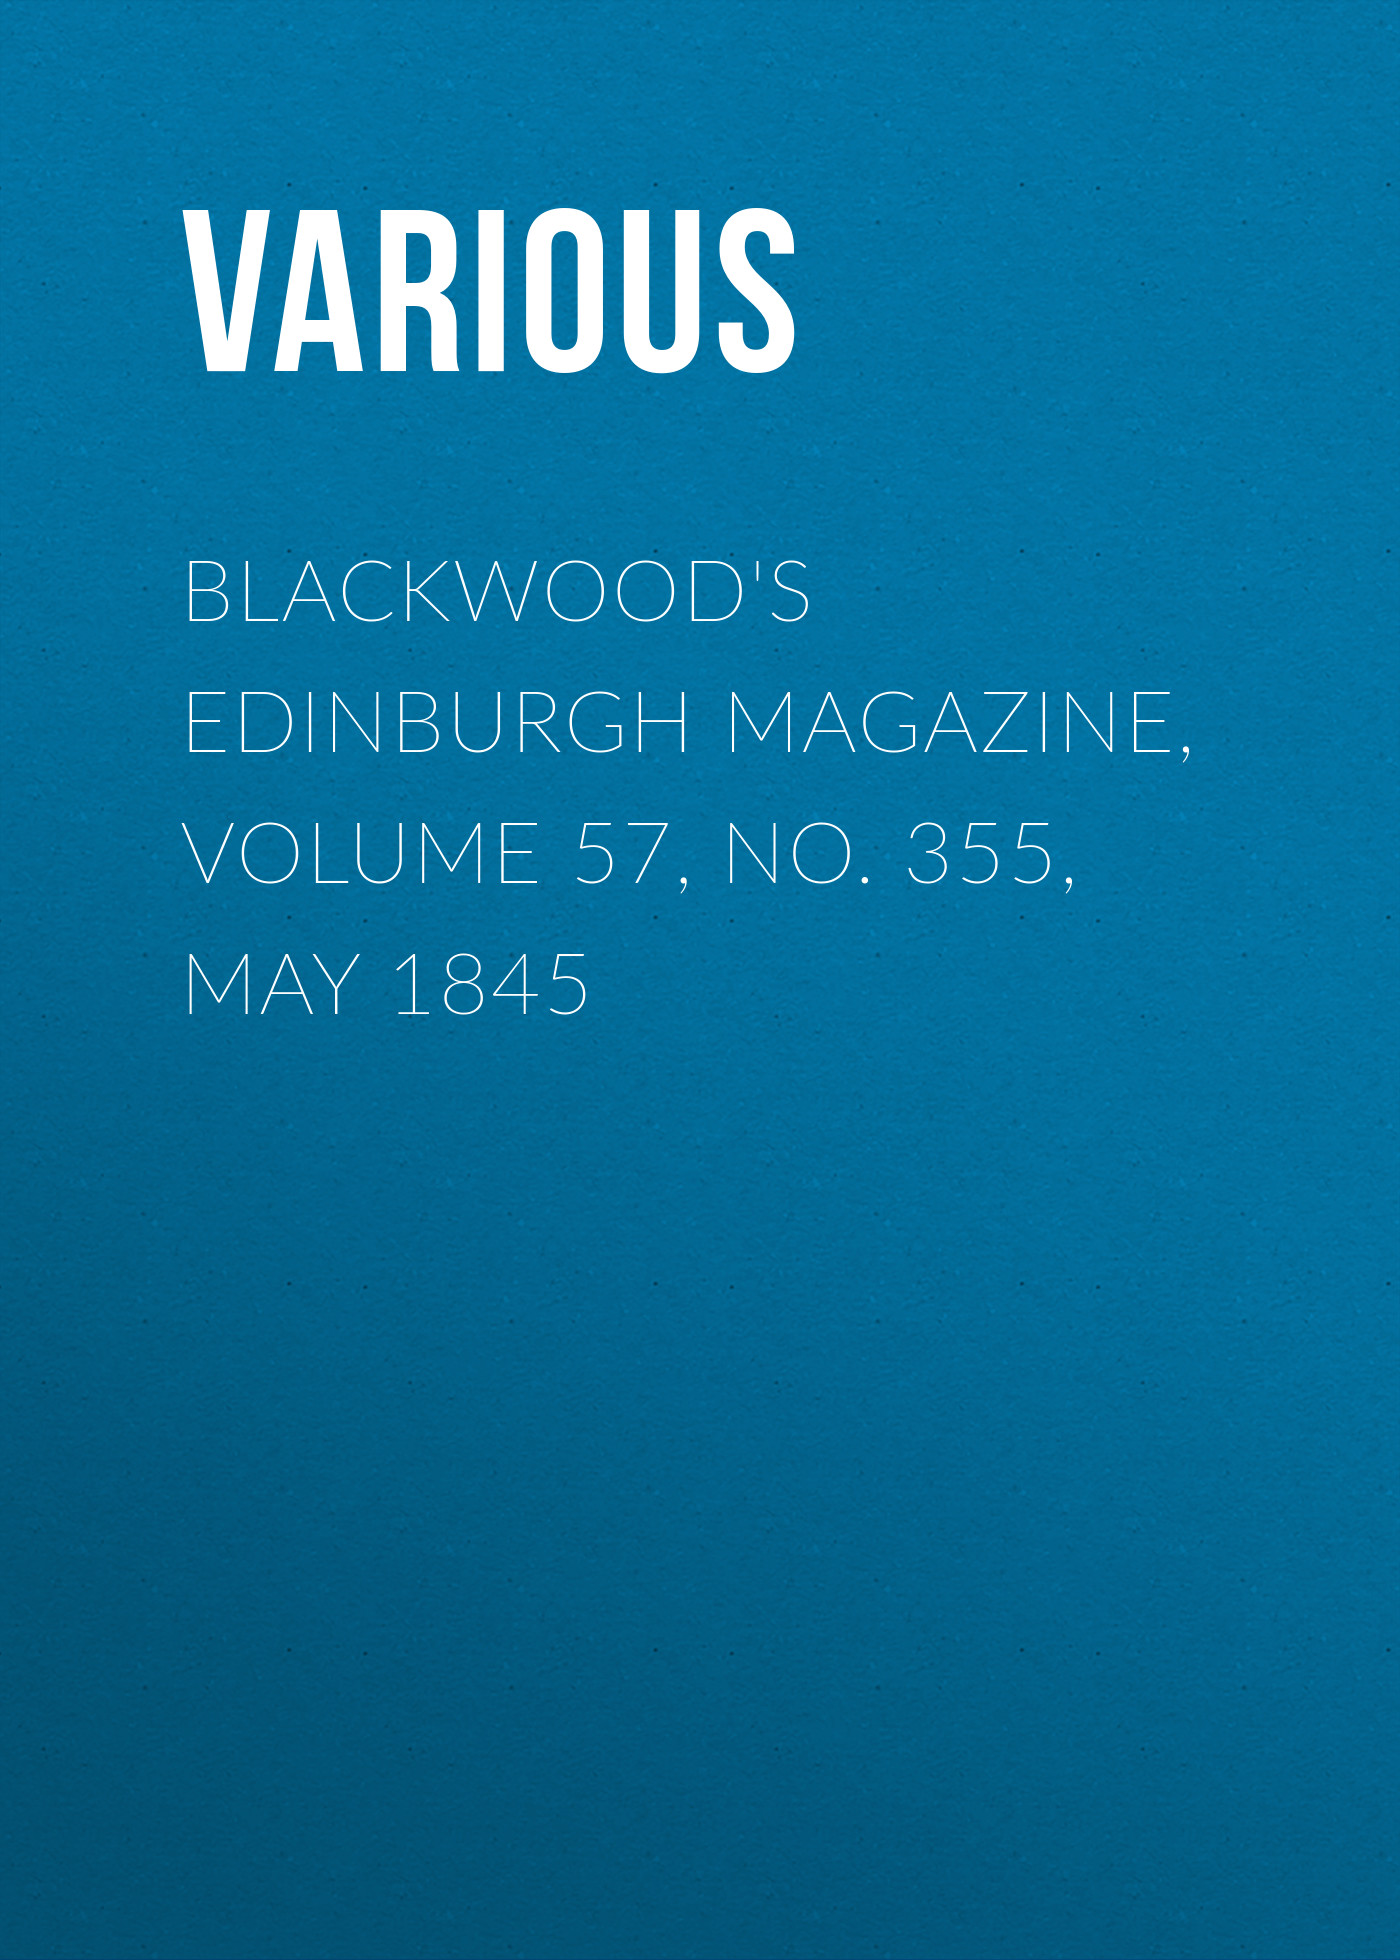 Various Blackwood's Edinburgh Magazine, Volume 57, No. 355, May 1845 sharp kc d41rw